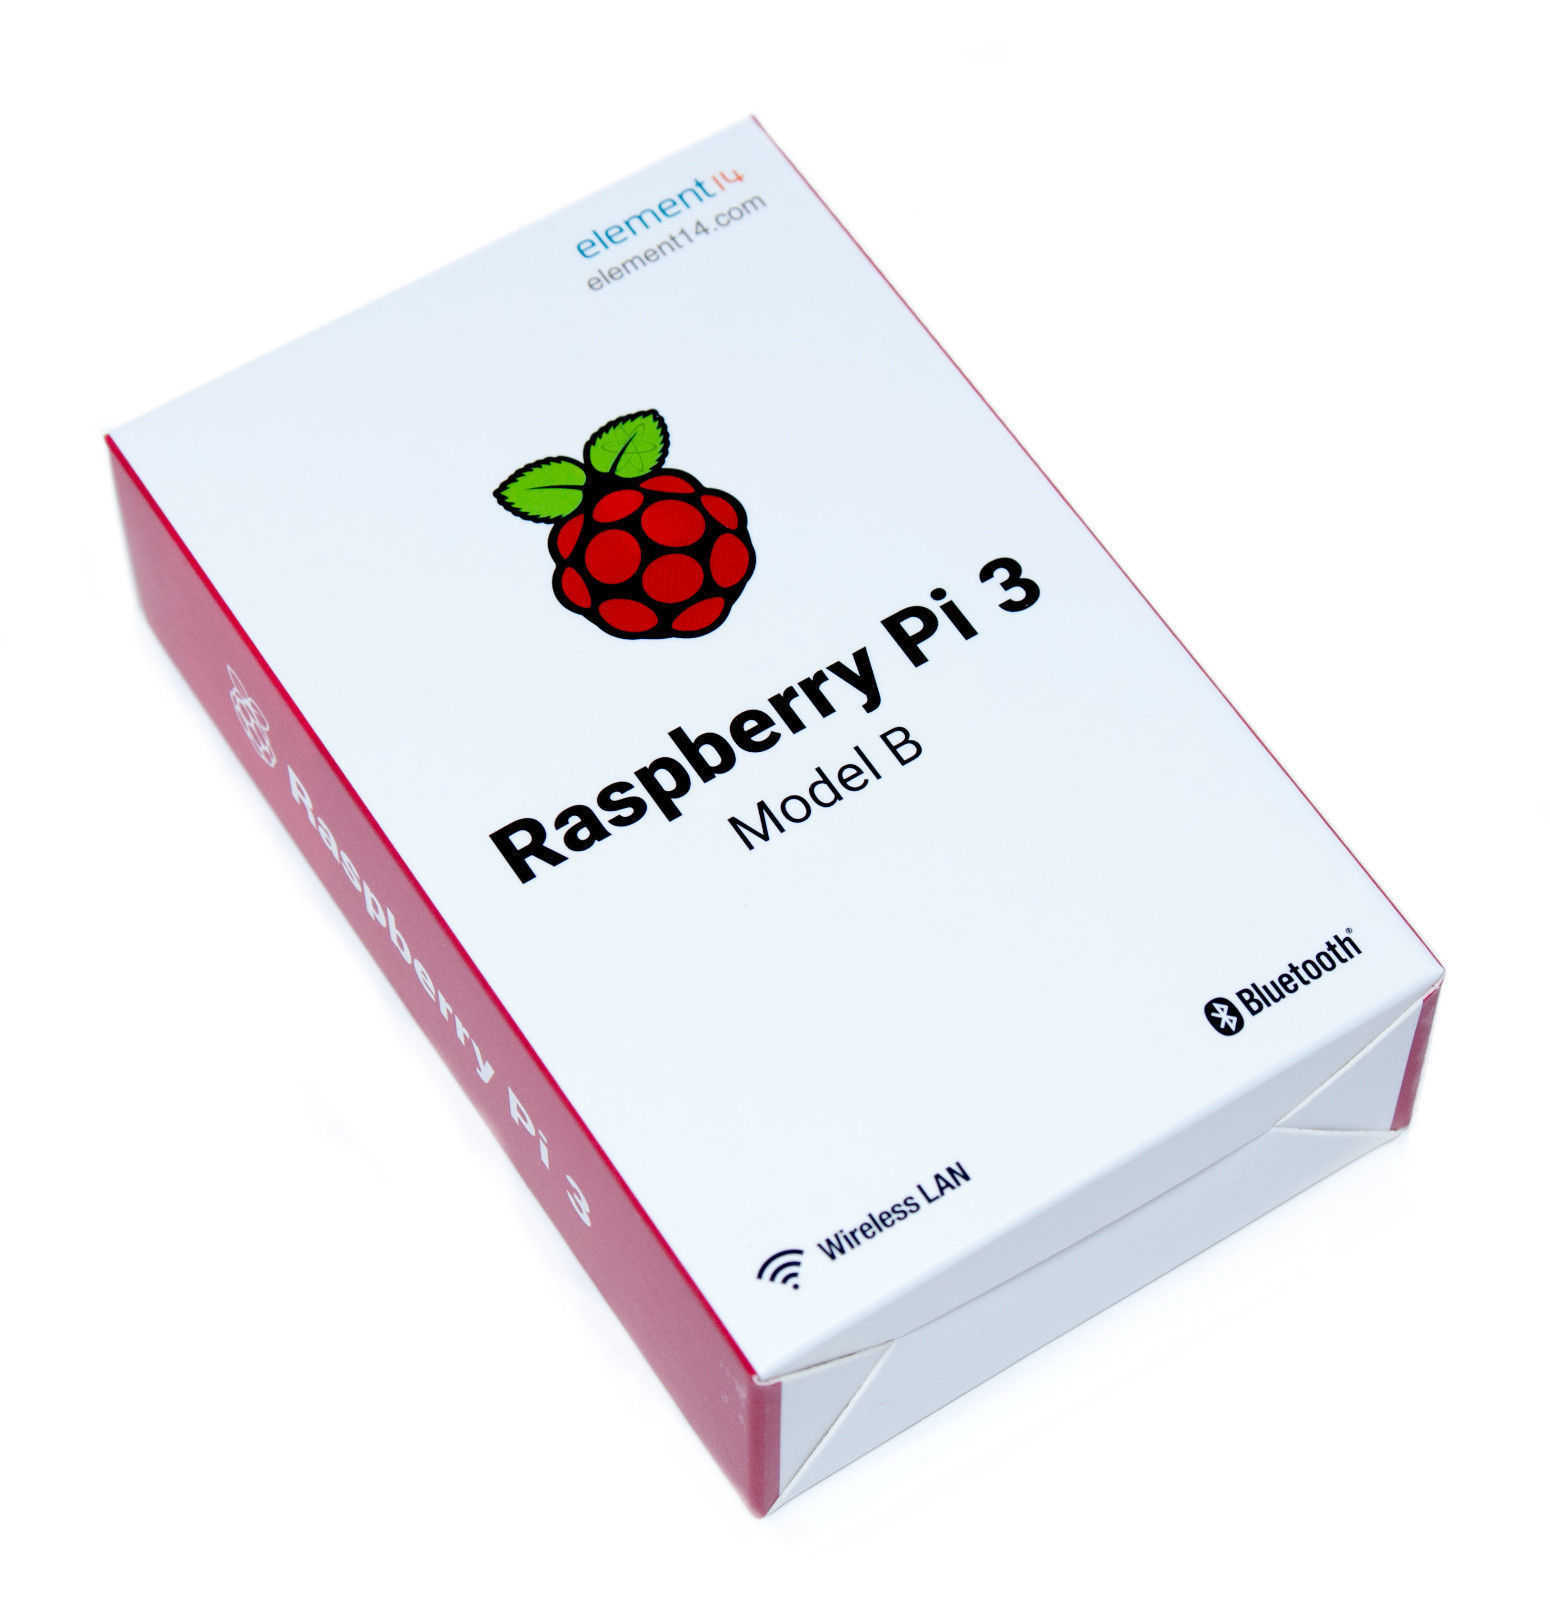 2016 Raspberry Pi 3 Model B 1GB RAM Quad Core 1.2GHz 64bit CPU WiFi & Bluetooth